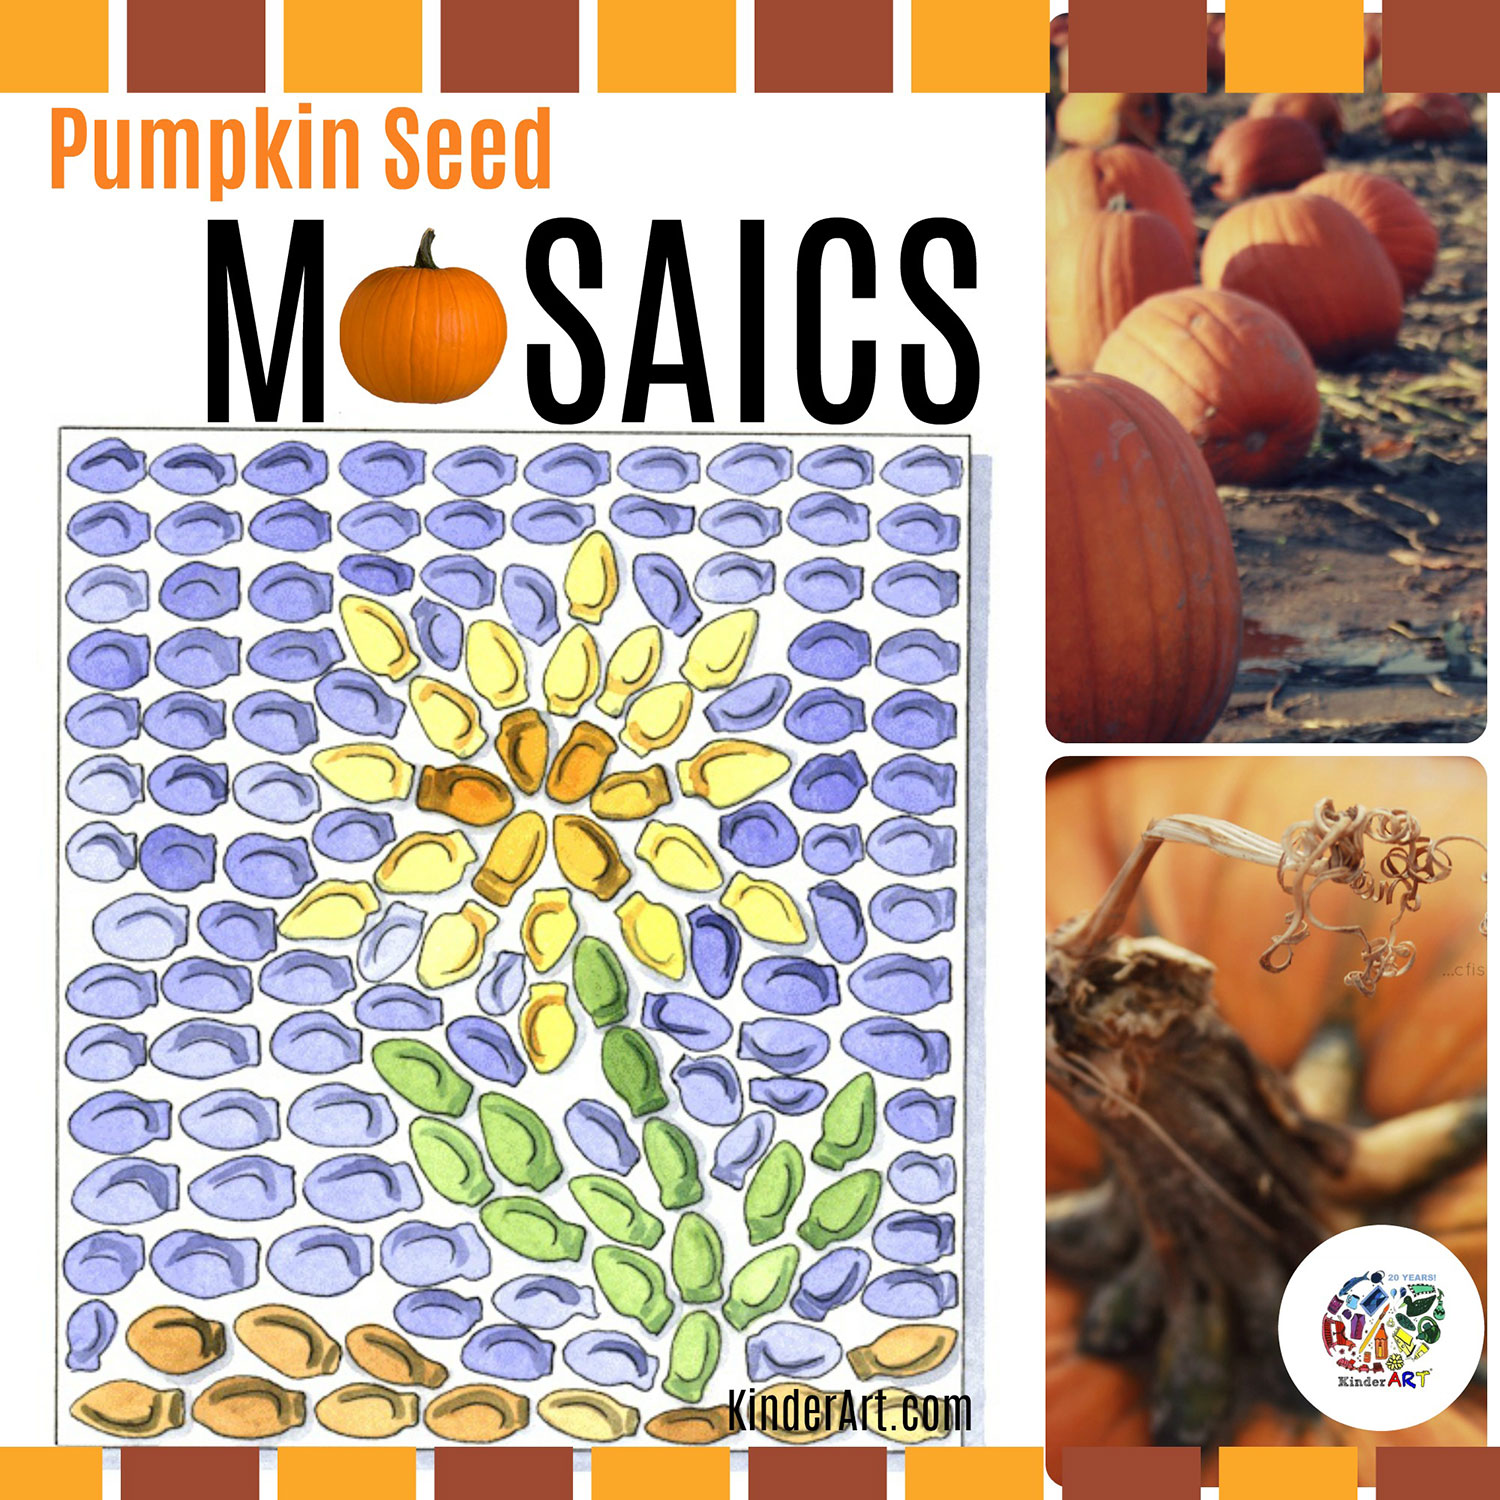 Pumpkin Seed Mosaics Lesson from KinderArt.com